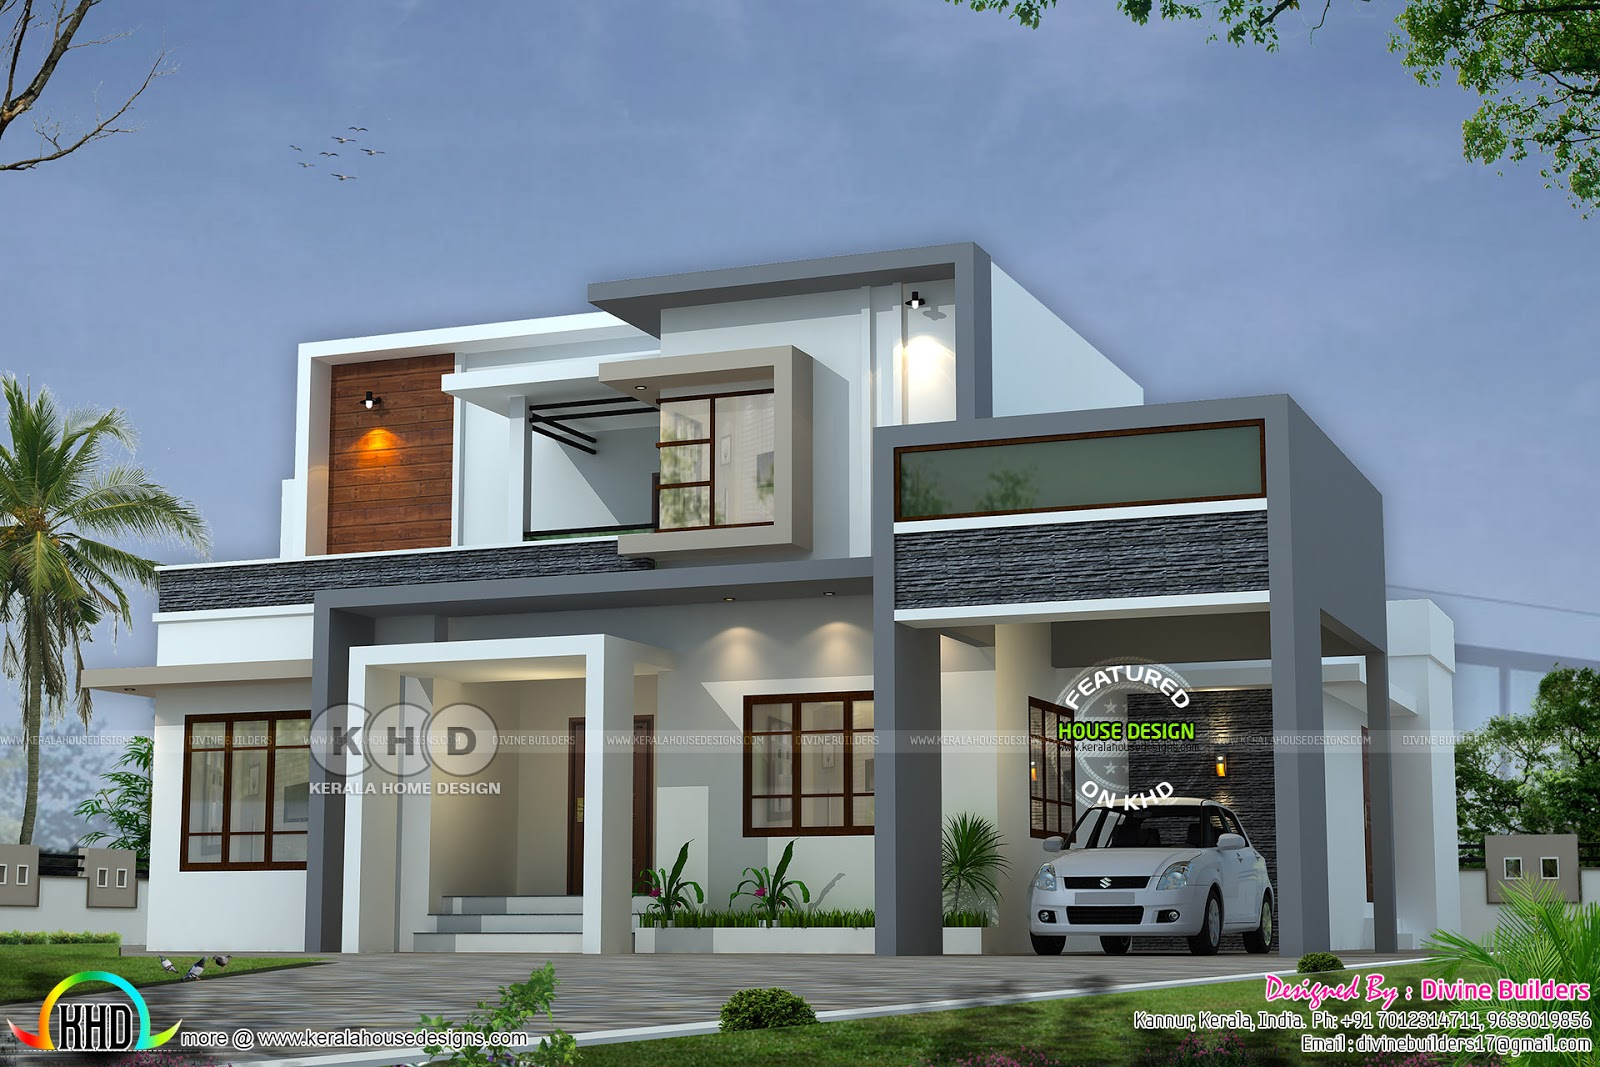 2017 kerala home design and floor plans for Contemporary home plans free